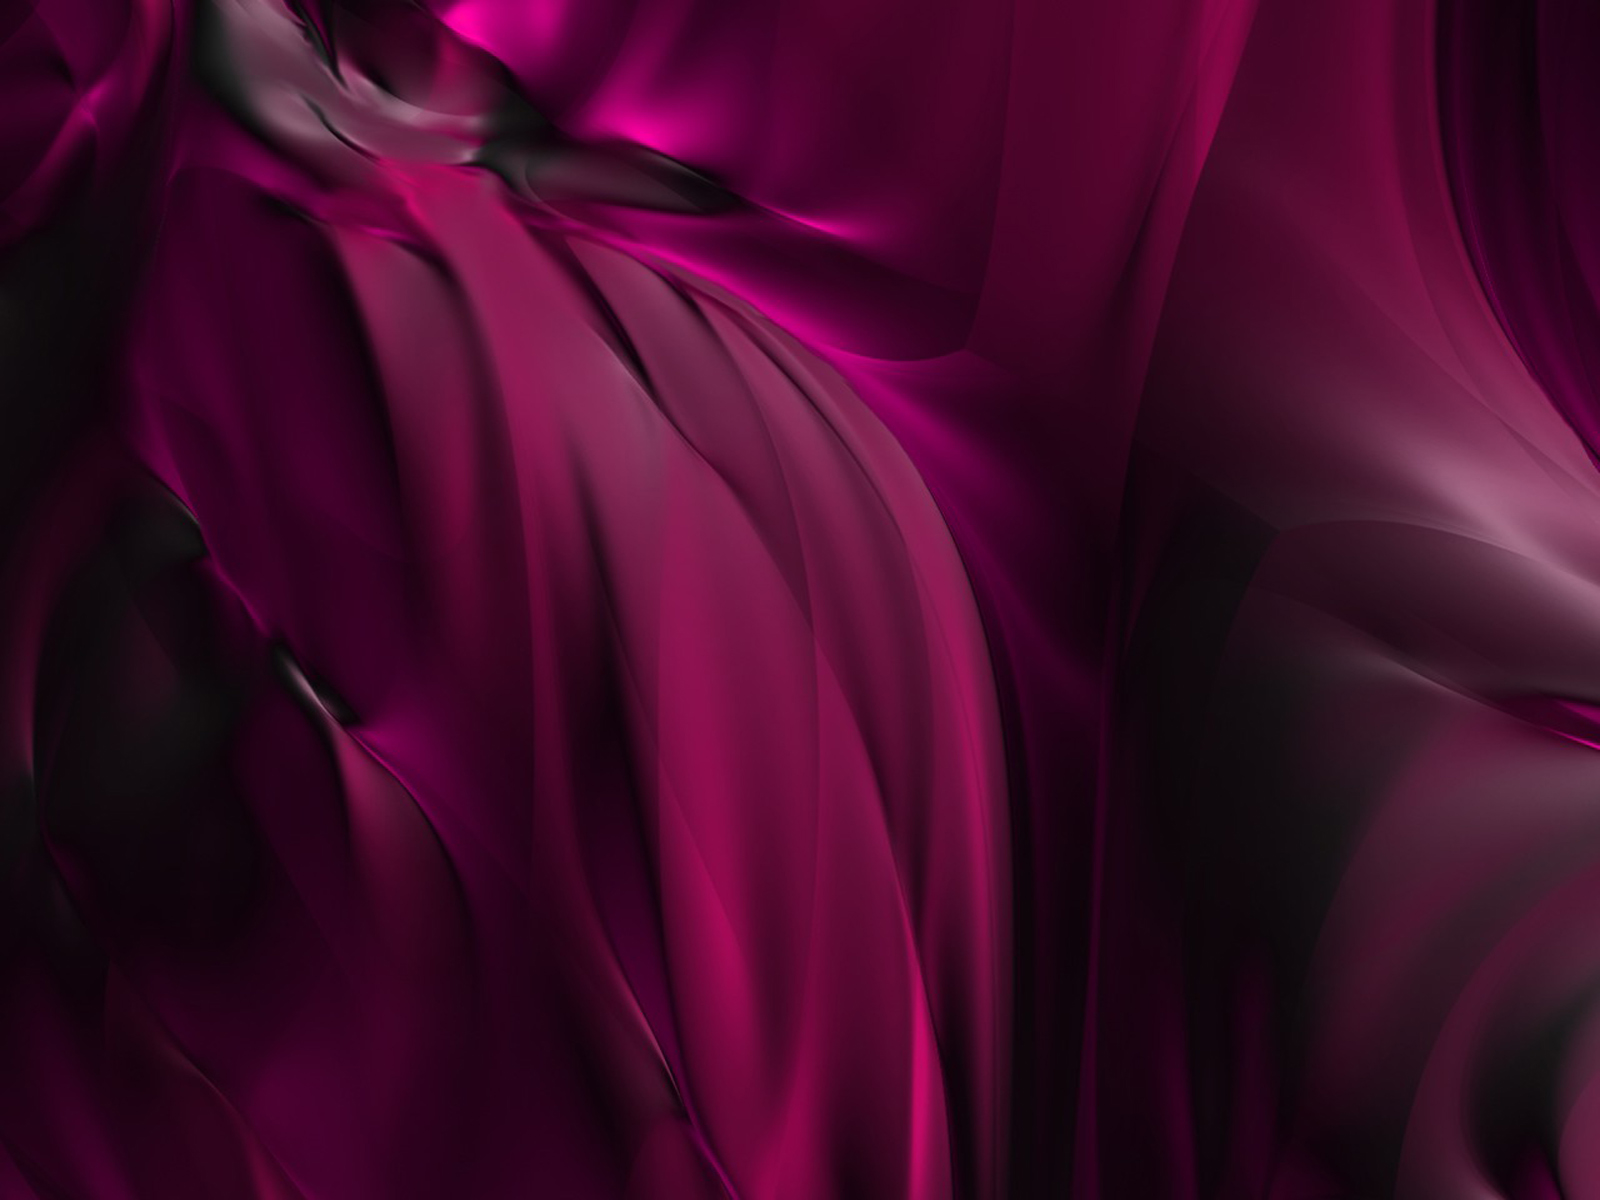 Black And Pink Desktop Wallpaper Purple black and pink stains 1600x1200